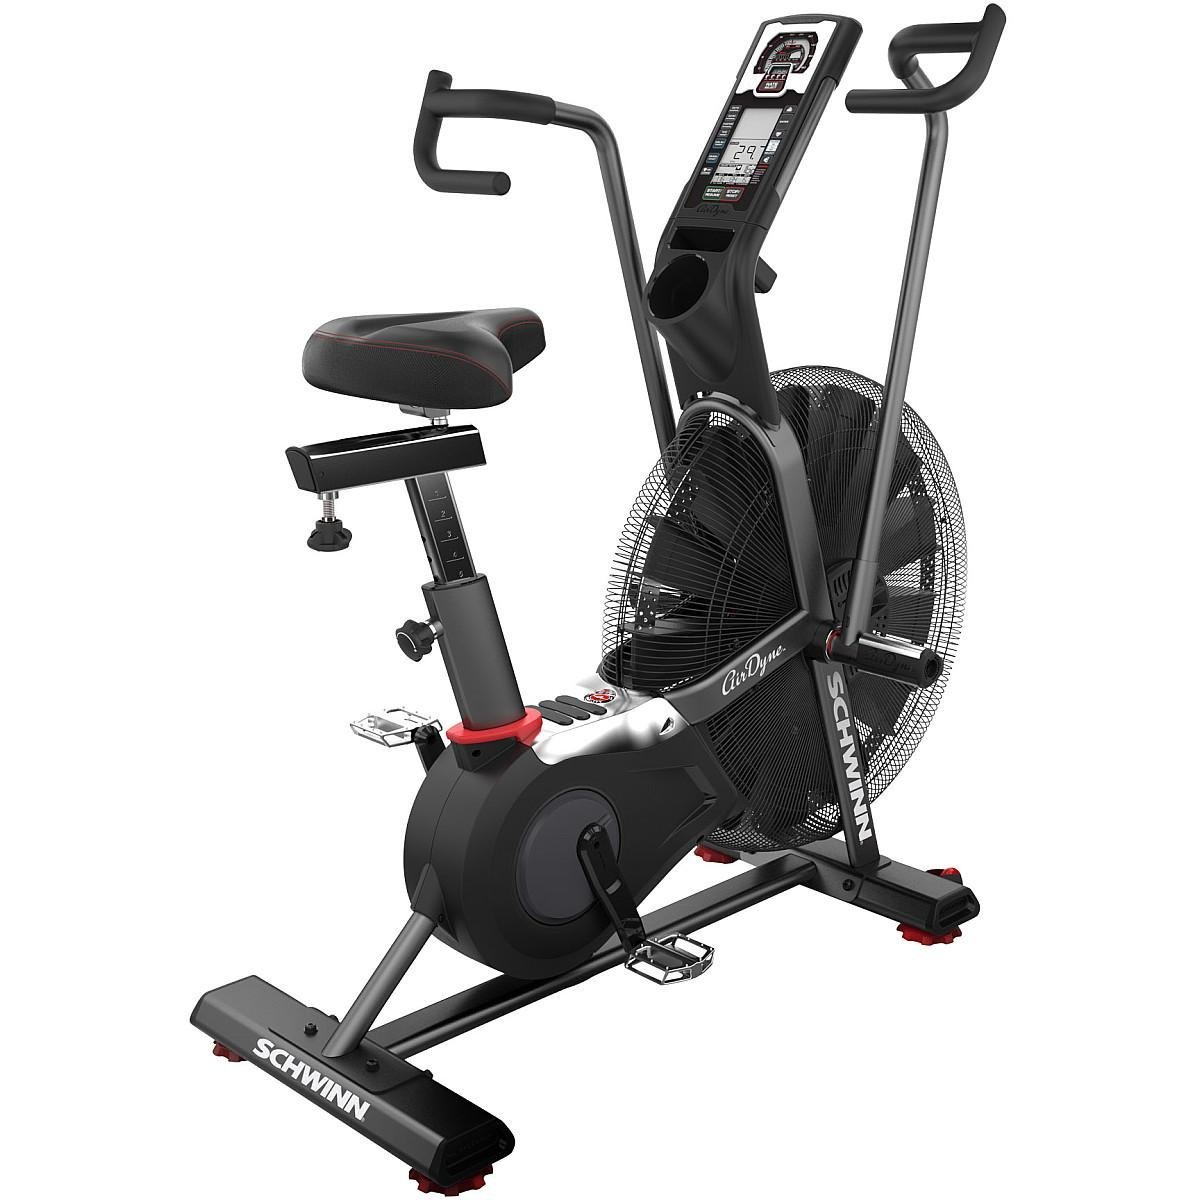 The Schwinn Airdyne Ad7 Is Solid With Smooth Pedaling Motion